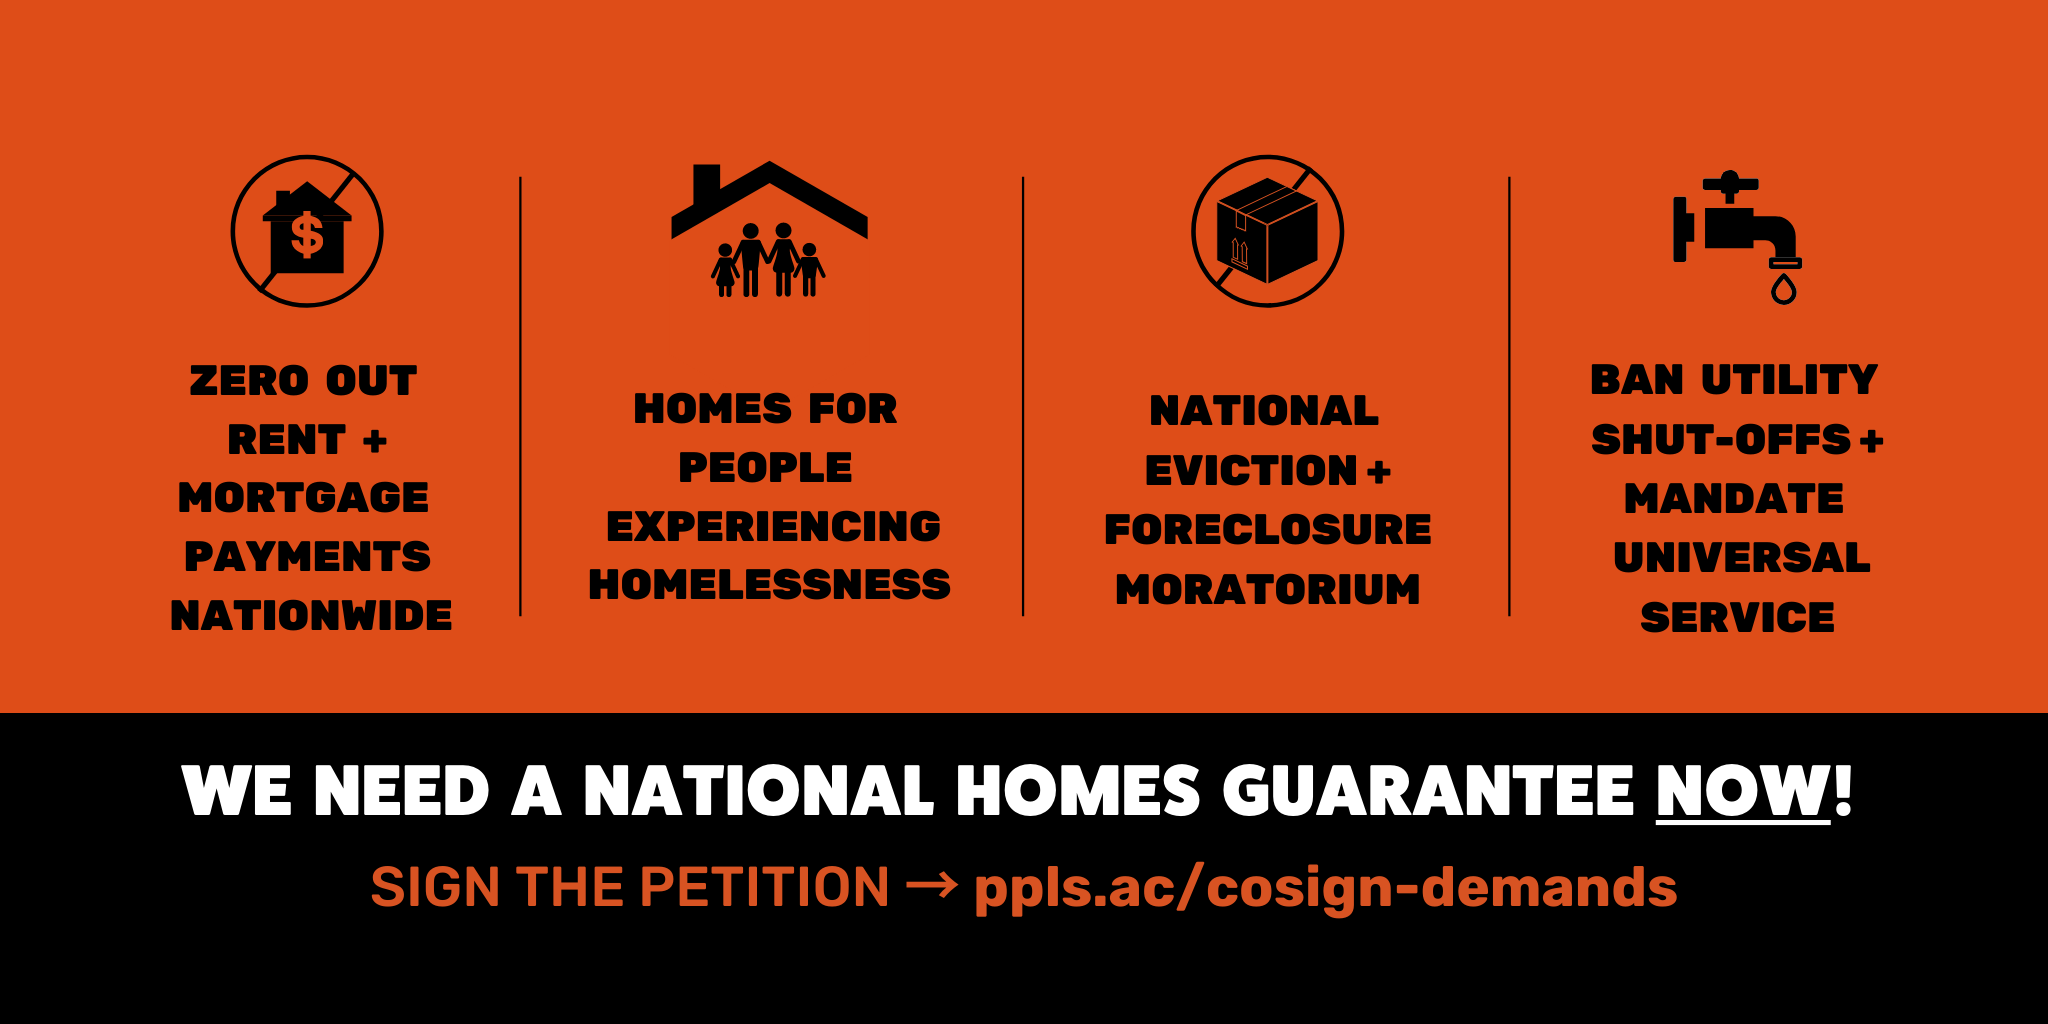 ADD YOUR SIGNATURE: COVID-19 Emergency Housing Demands